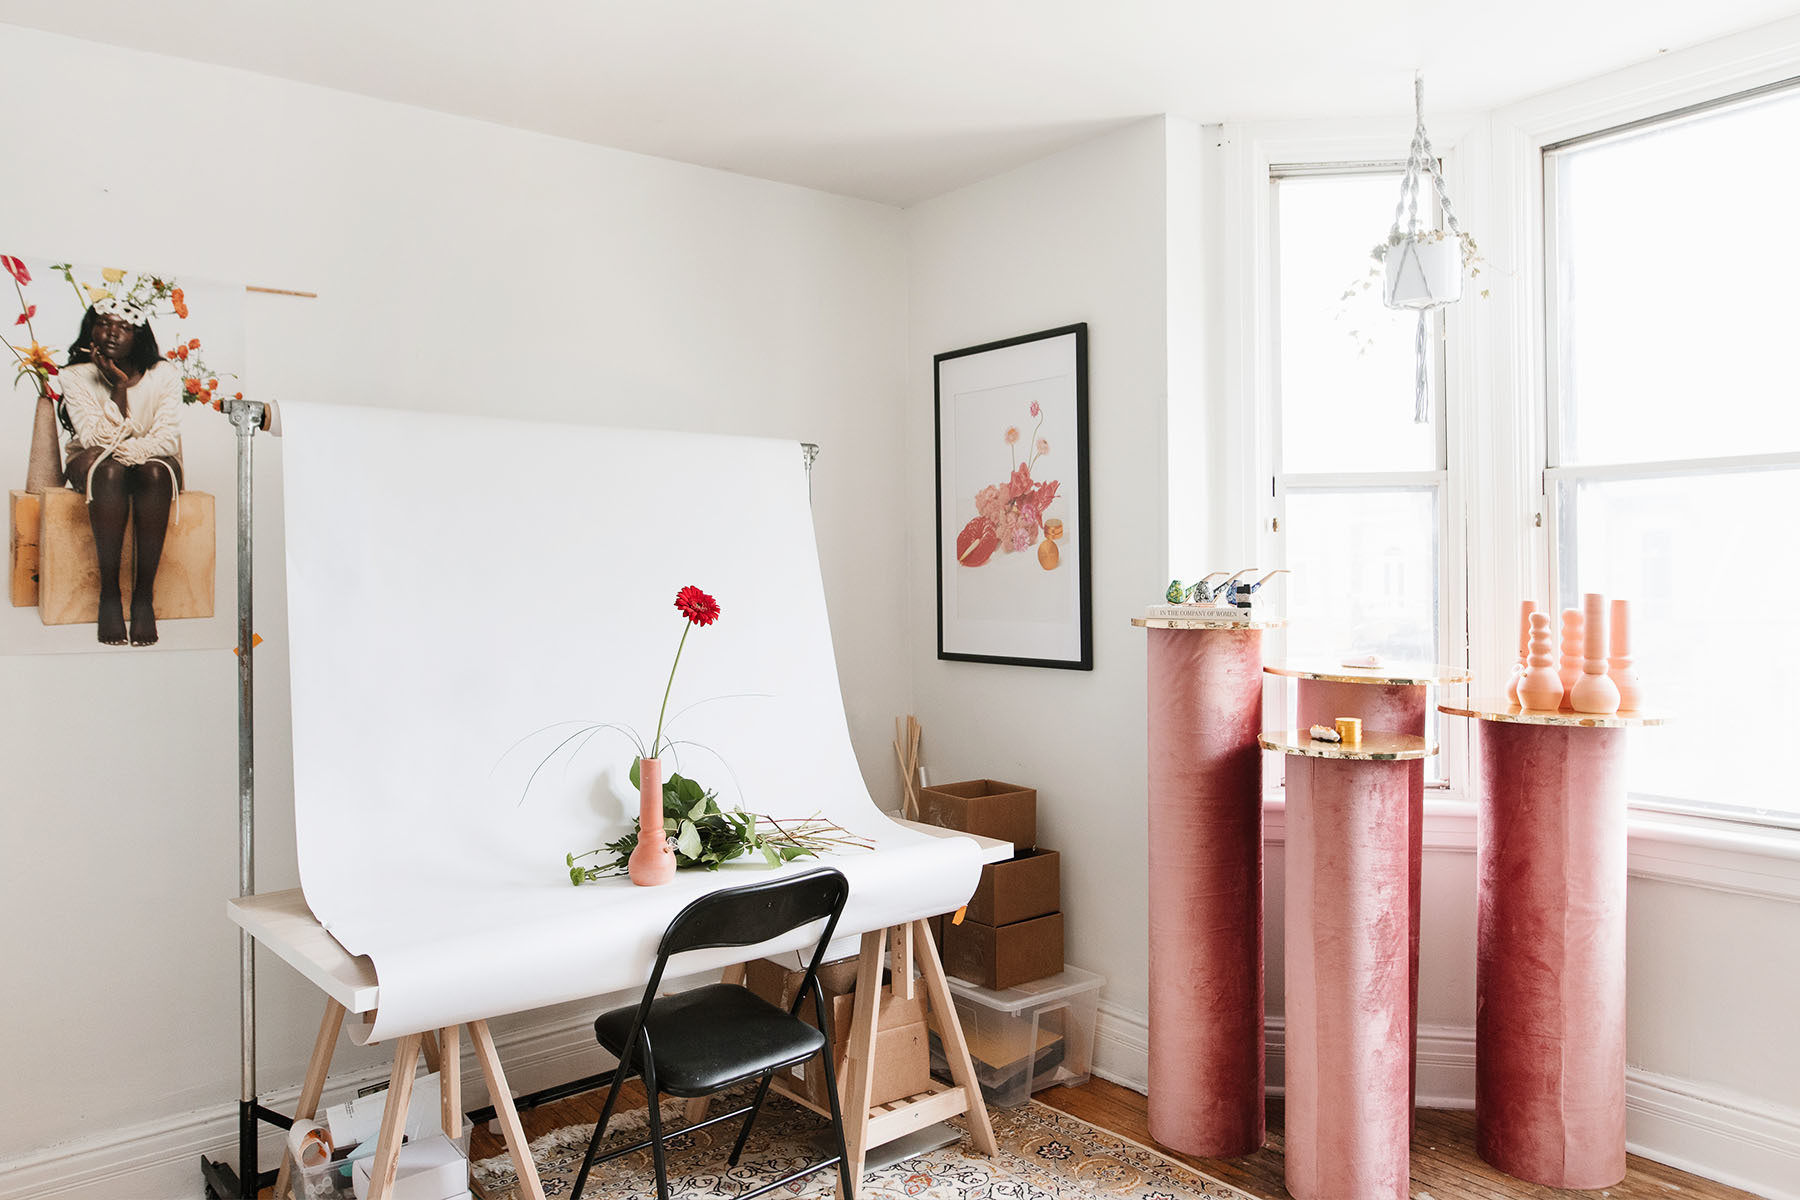 Dineen's studio space features a customized IKEA artist's easel, pink pedestals by Diana Vander Meulen, and Sackville & Co. prints by Duncan Foy.